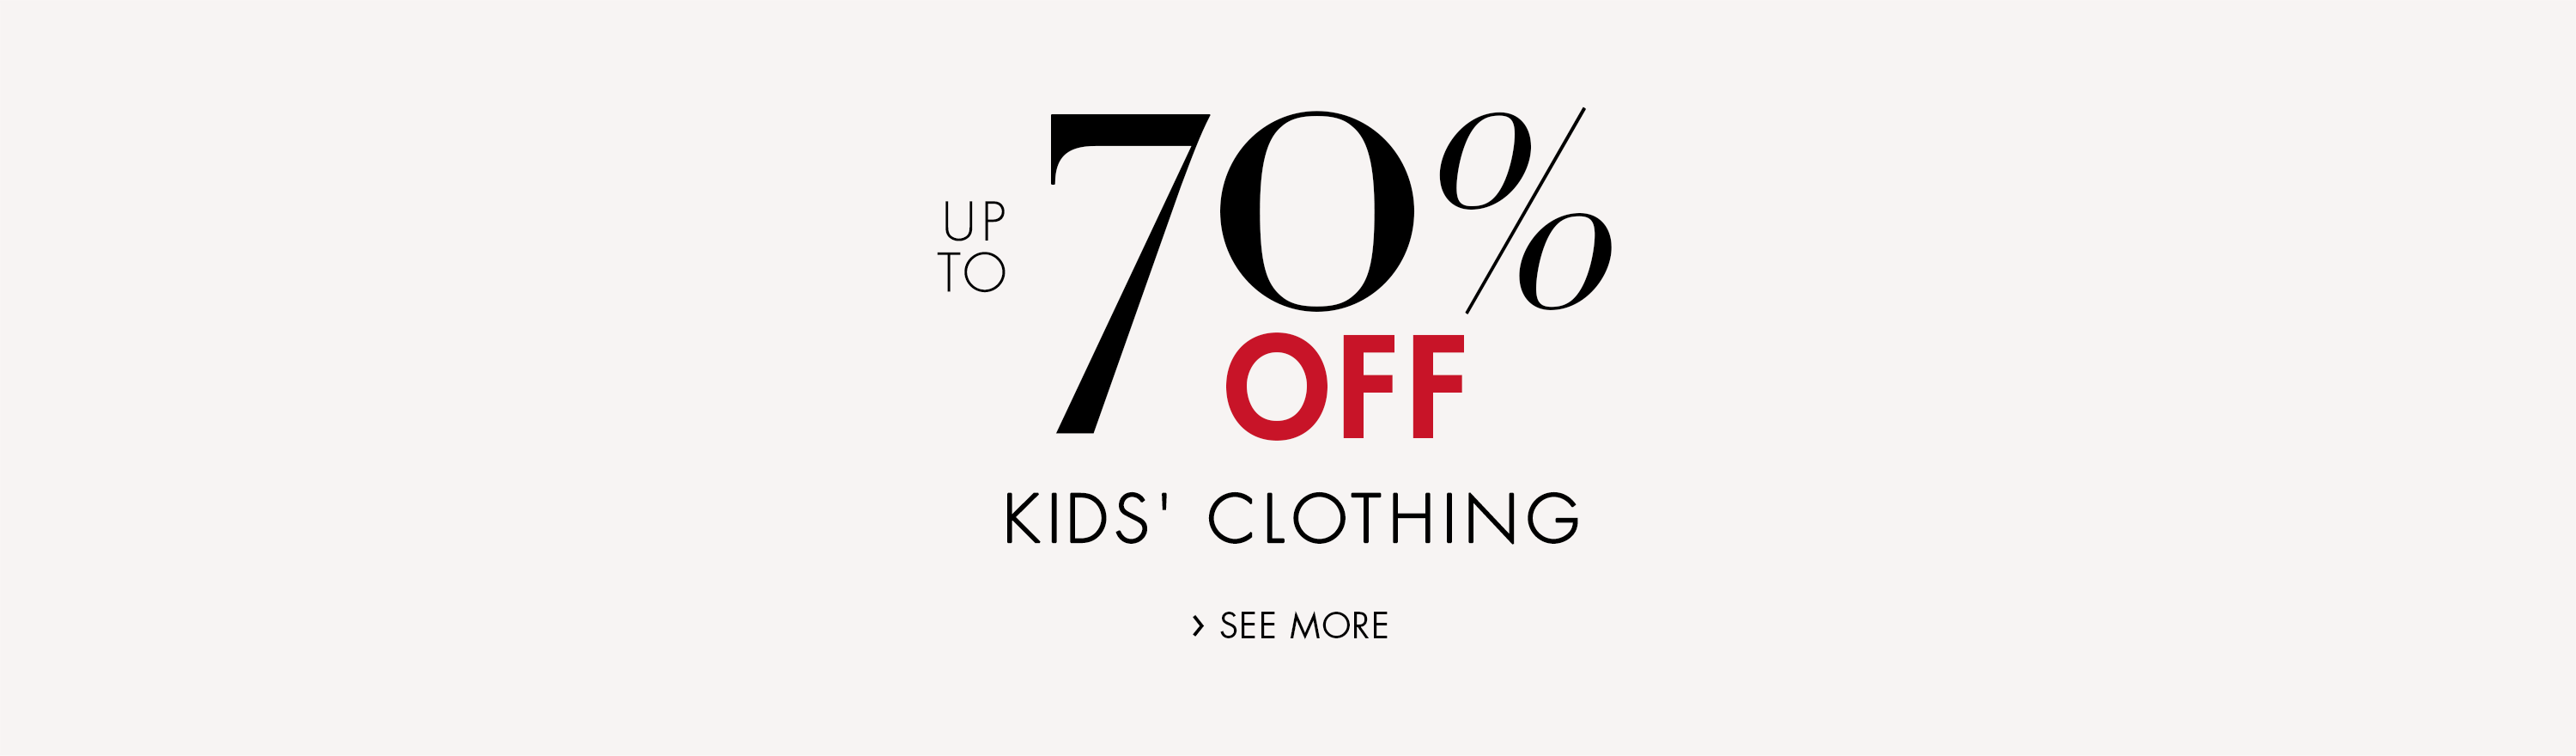 Up to 70% Off Kids' Clothing